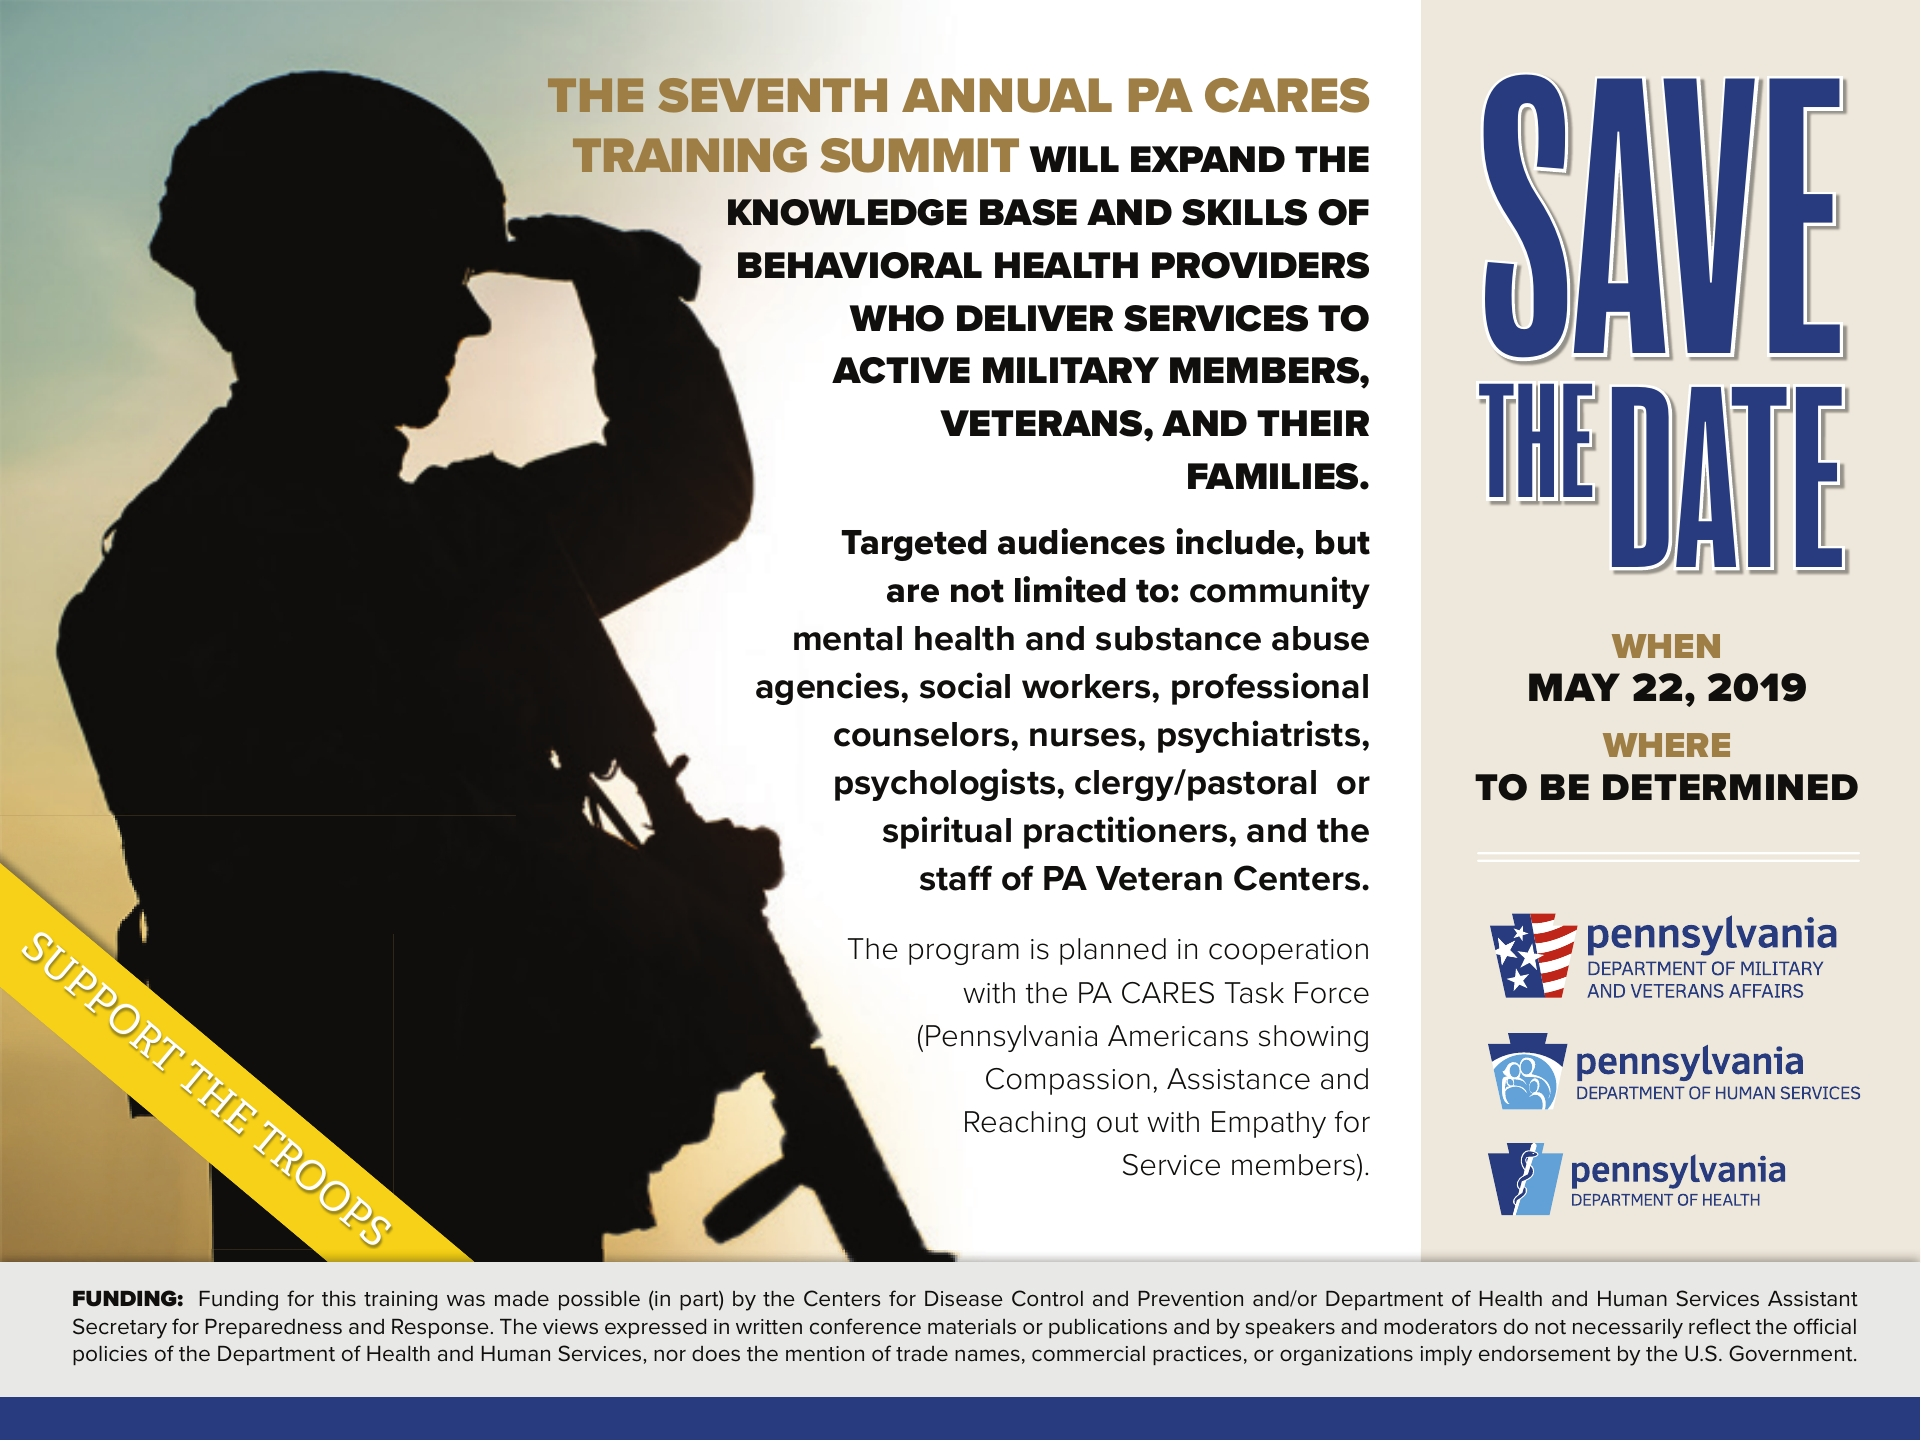 PA CARES TRAINING SUMMIT 2019  Behavioral Health and Military